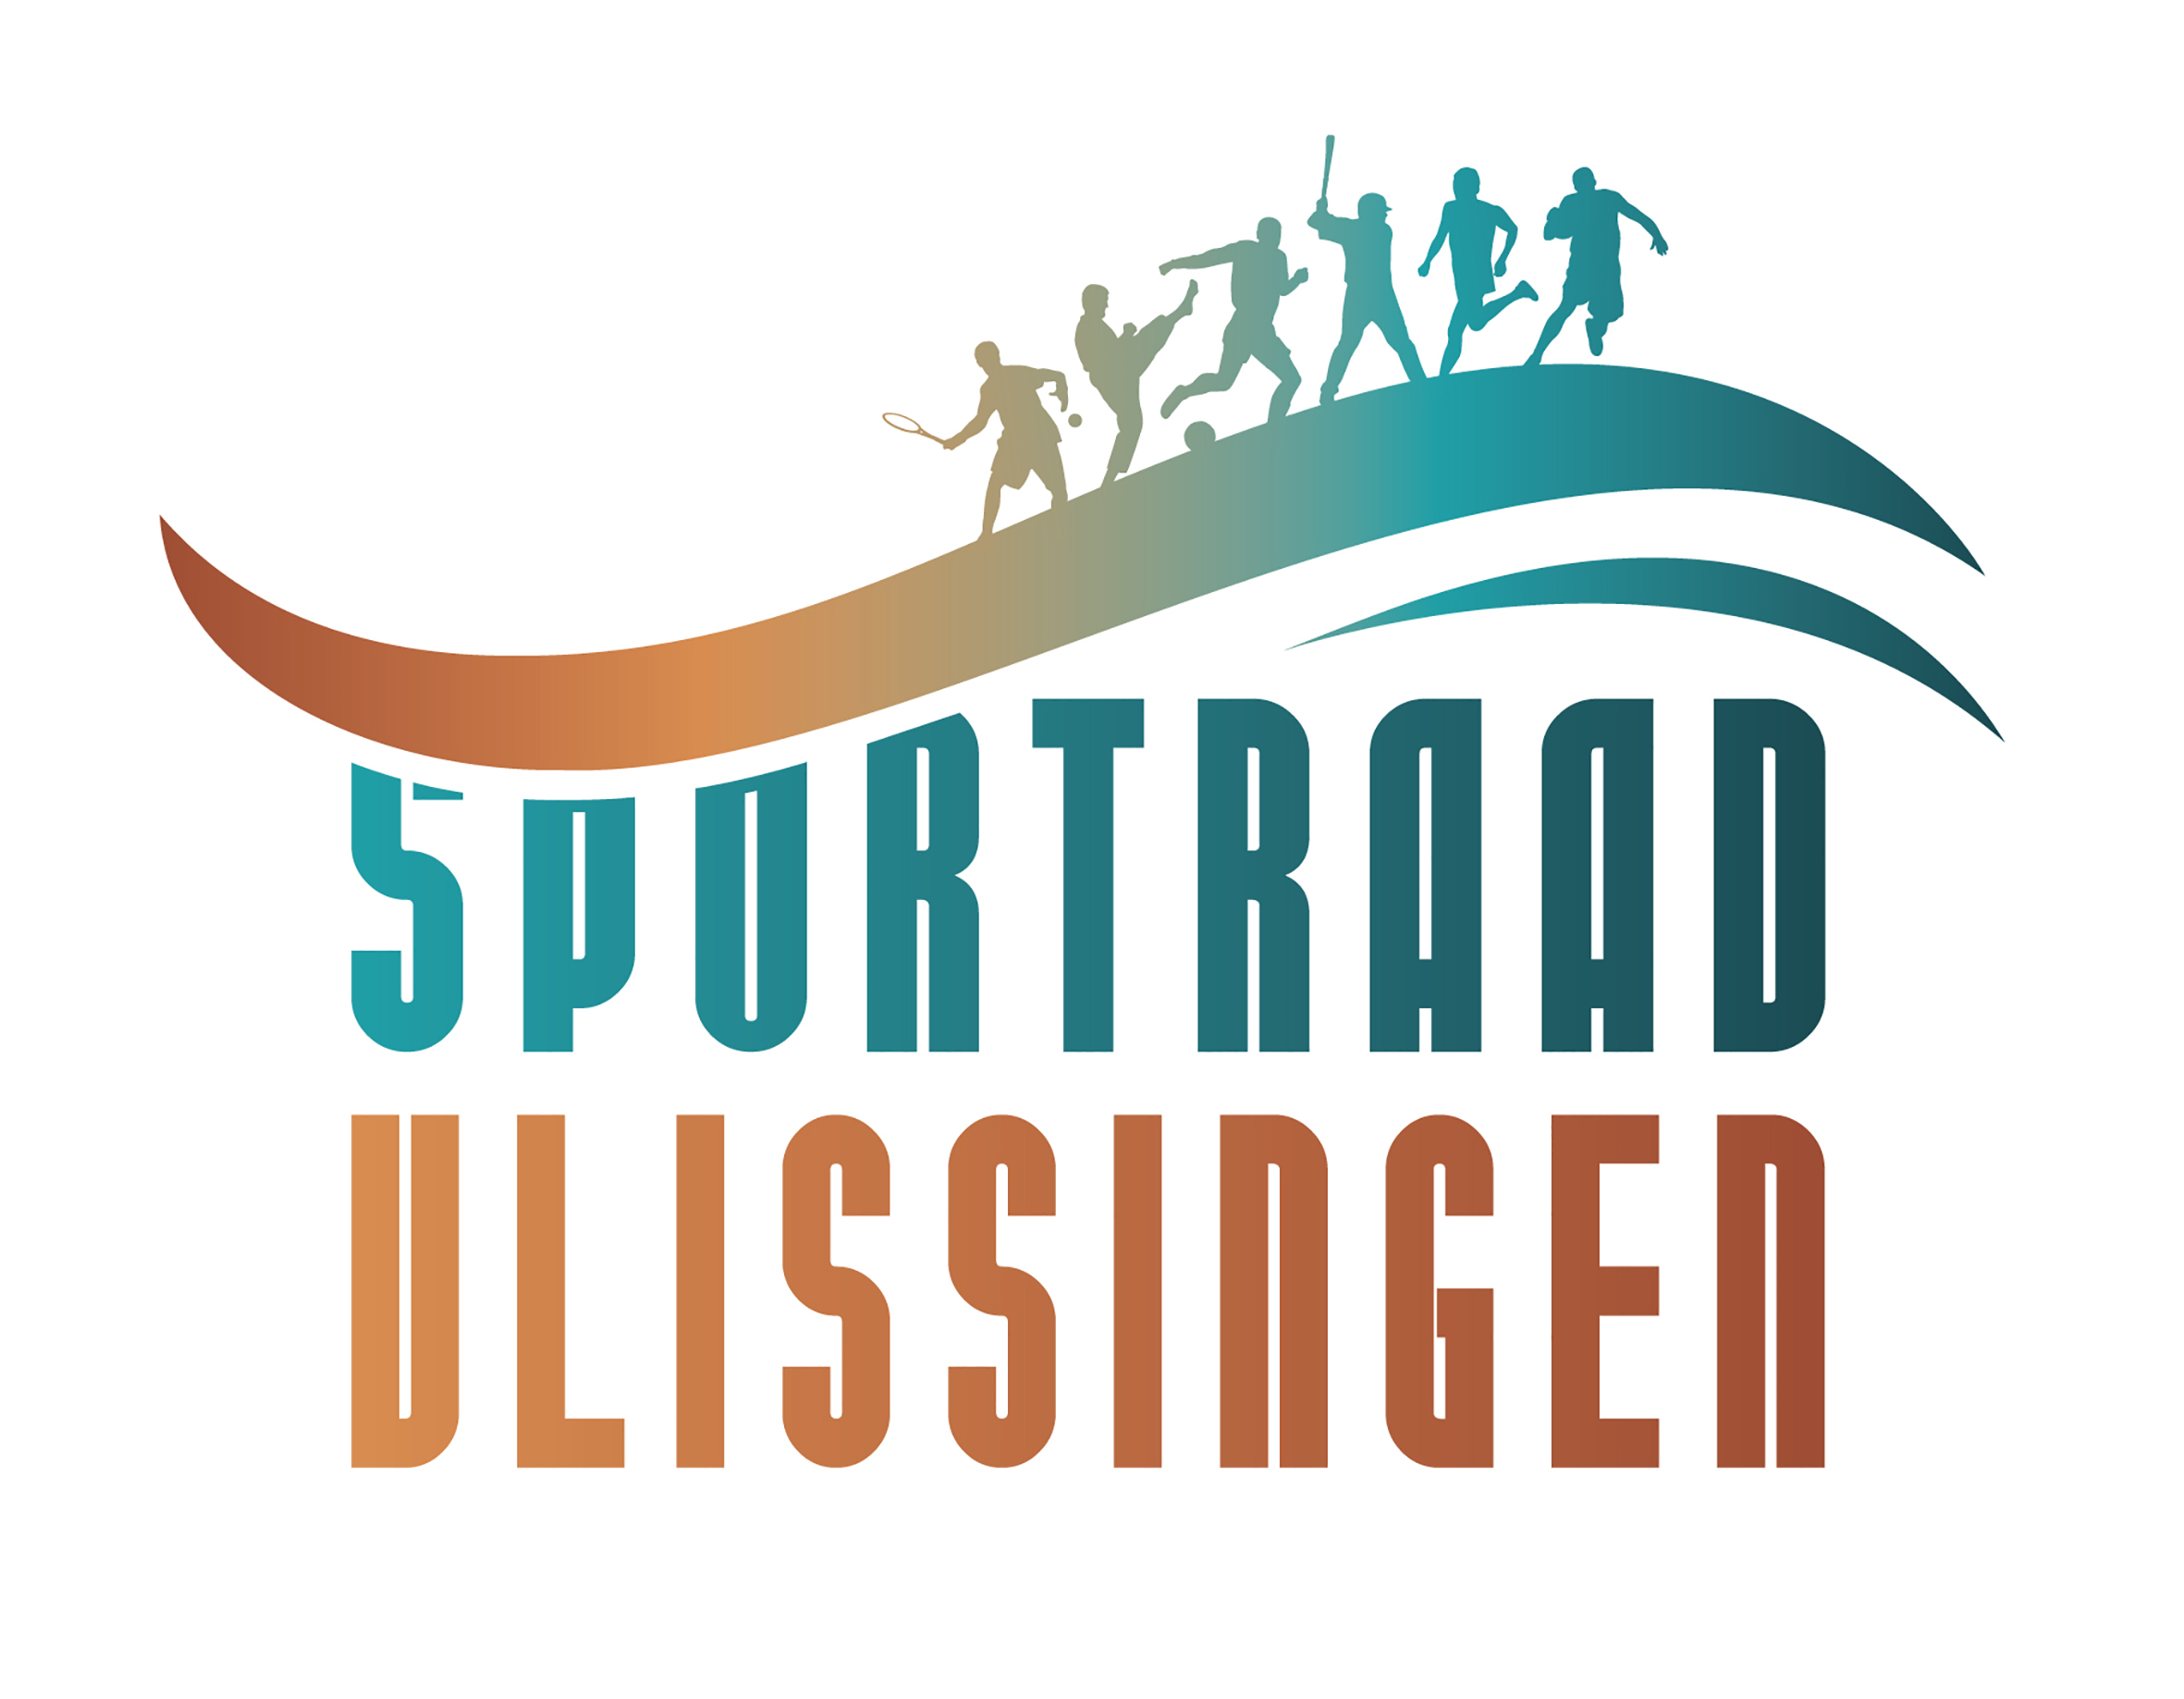 Sportraad Vlissingen